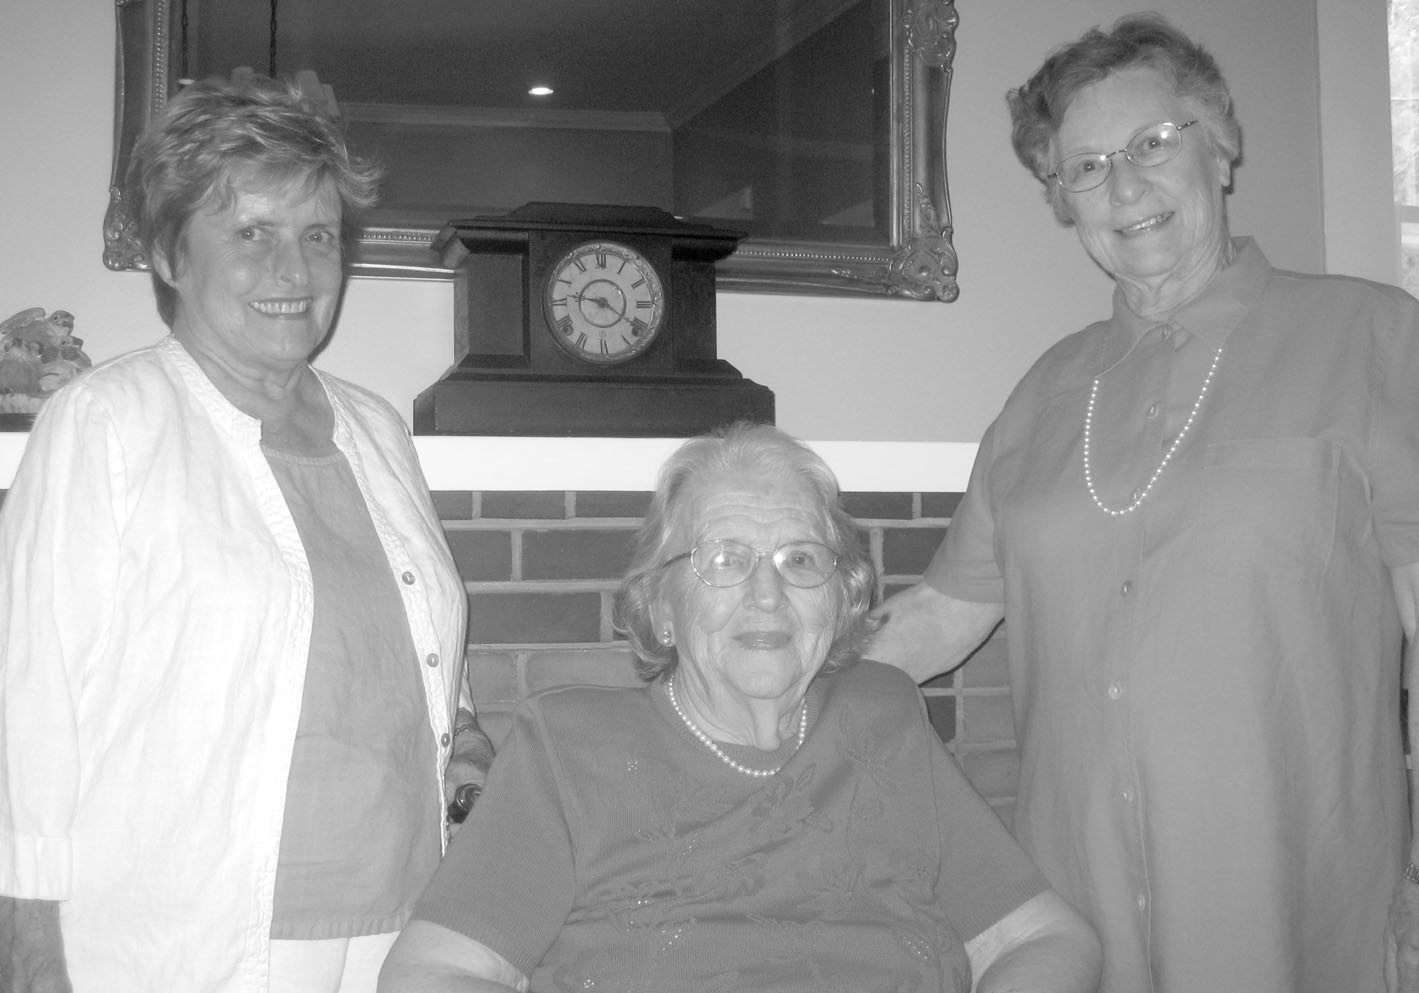 Lester Memorial members from left Martha Burdette, Agnes Greenhaw, and Sylvia Fowler all have a stake in upcoming gospel concert. The concert is dedicated to Mrs. Greenhaw, who turns 100 this month. Fowler helped initiate the concert series five years ago when she lobbied tirelessly for a public performance of a private choir memorial sung at the funeral of Tom Vaughn. The concert became an instant classic. Burdette represents the Lester Memorial choir and music department.